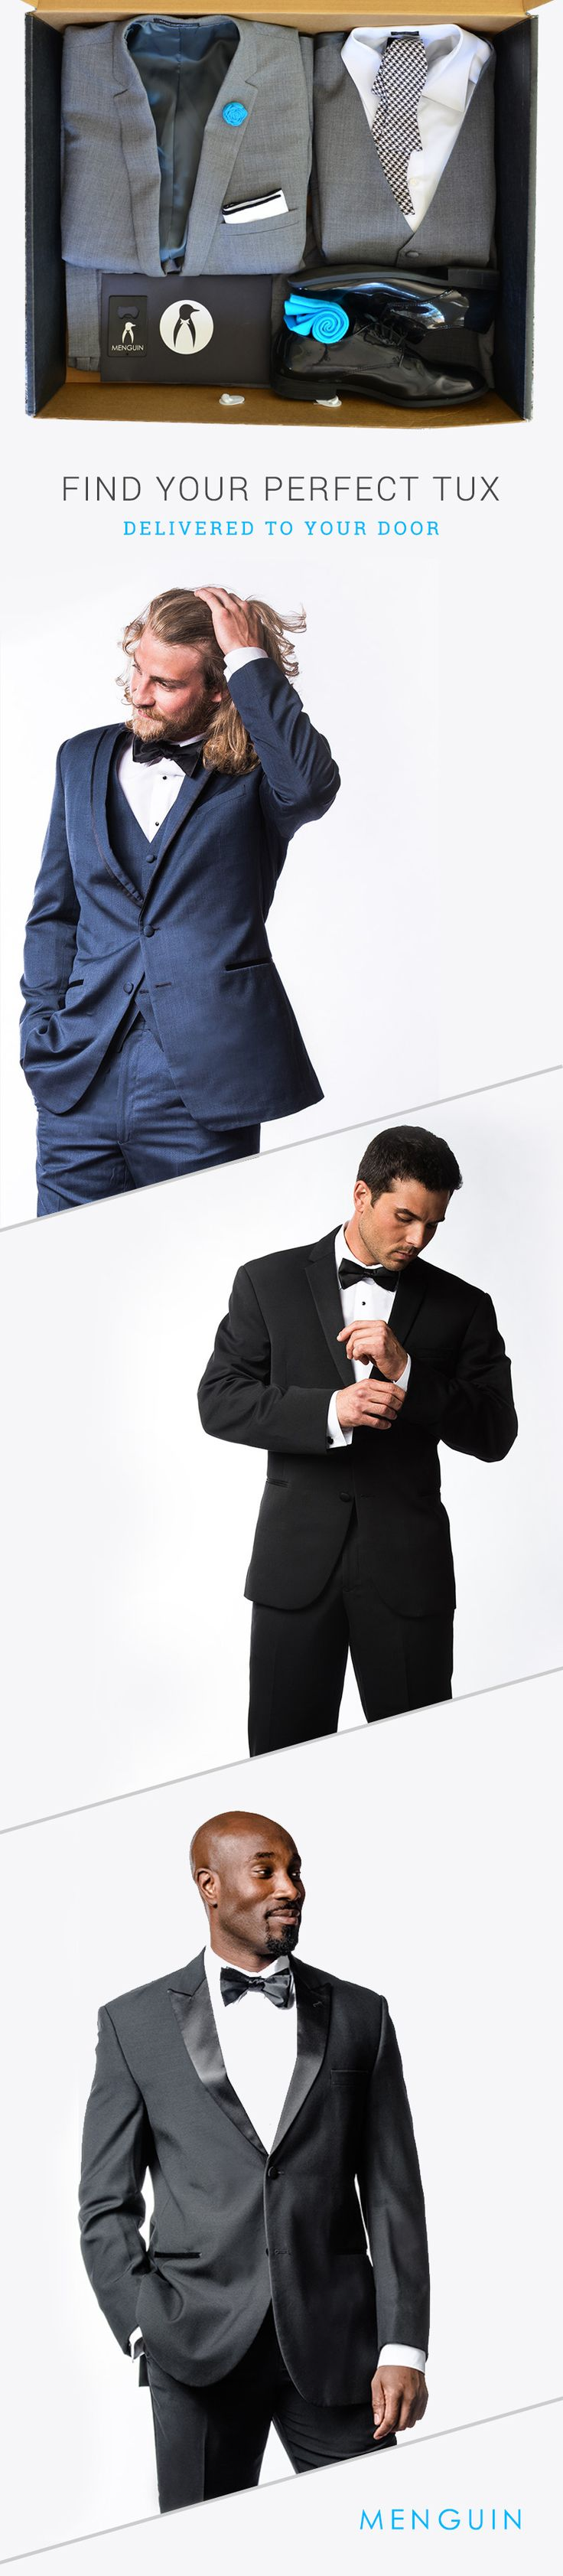 Affordable Tuxedo Rentals Delivered To Your Door | menguin.com